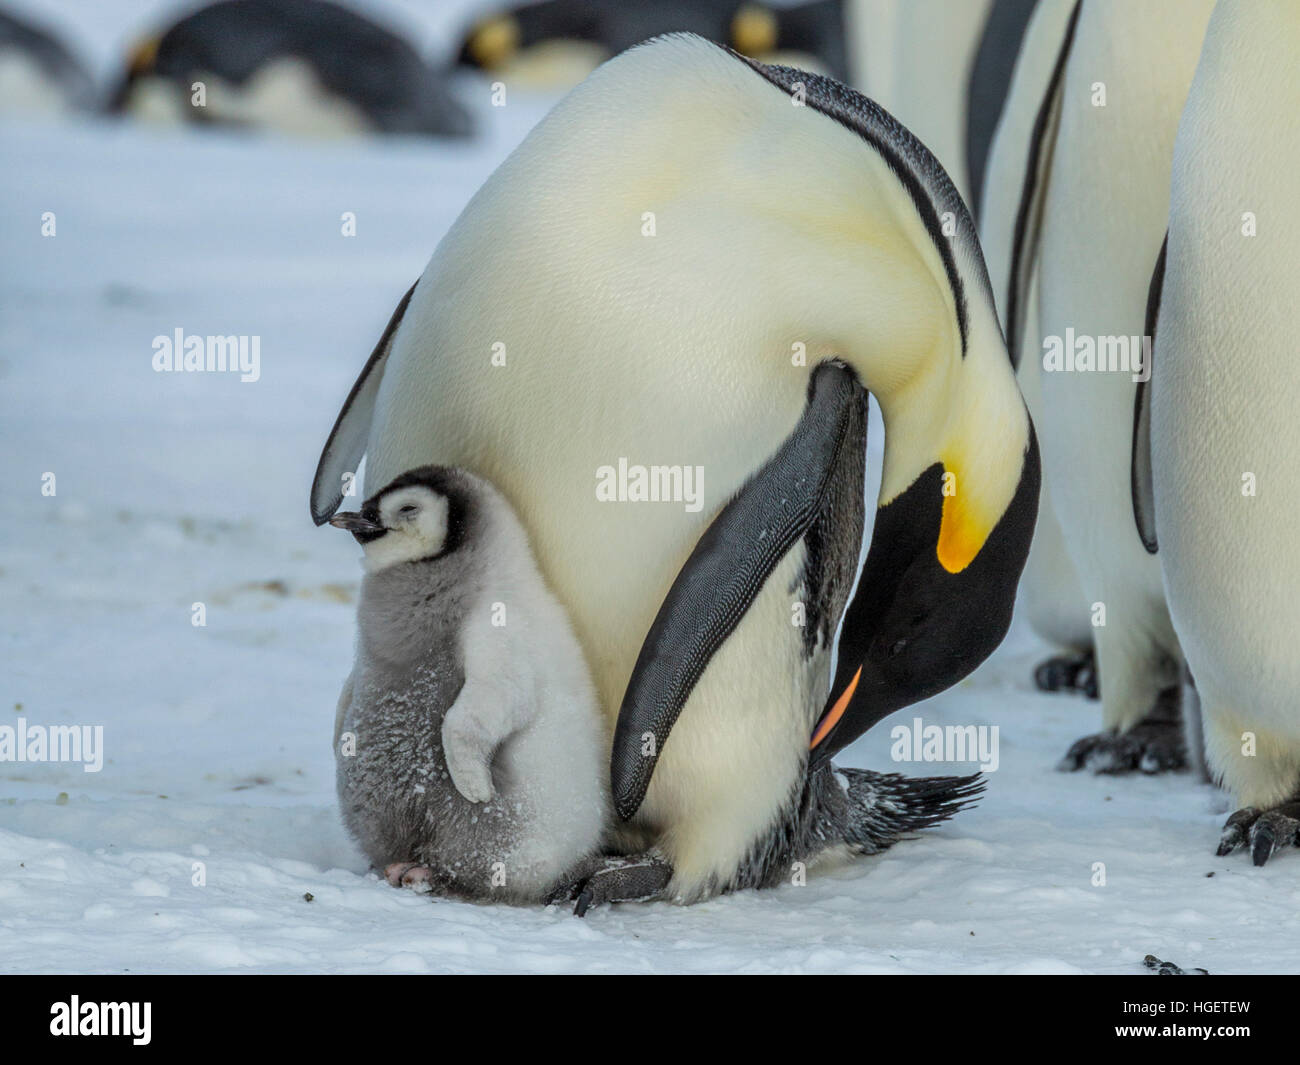 An Emperor Penguin chick sleeps while a parent preens - Stock Image